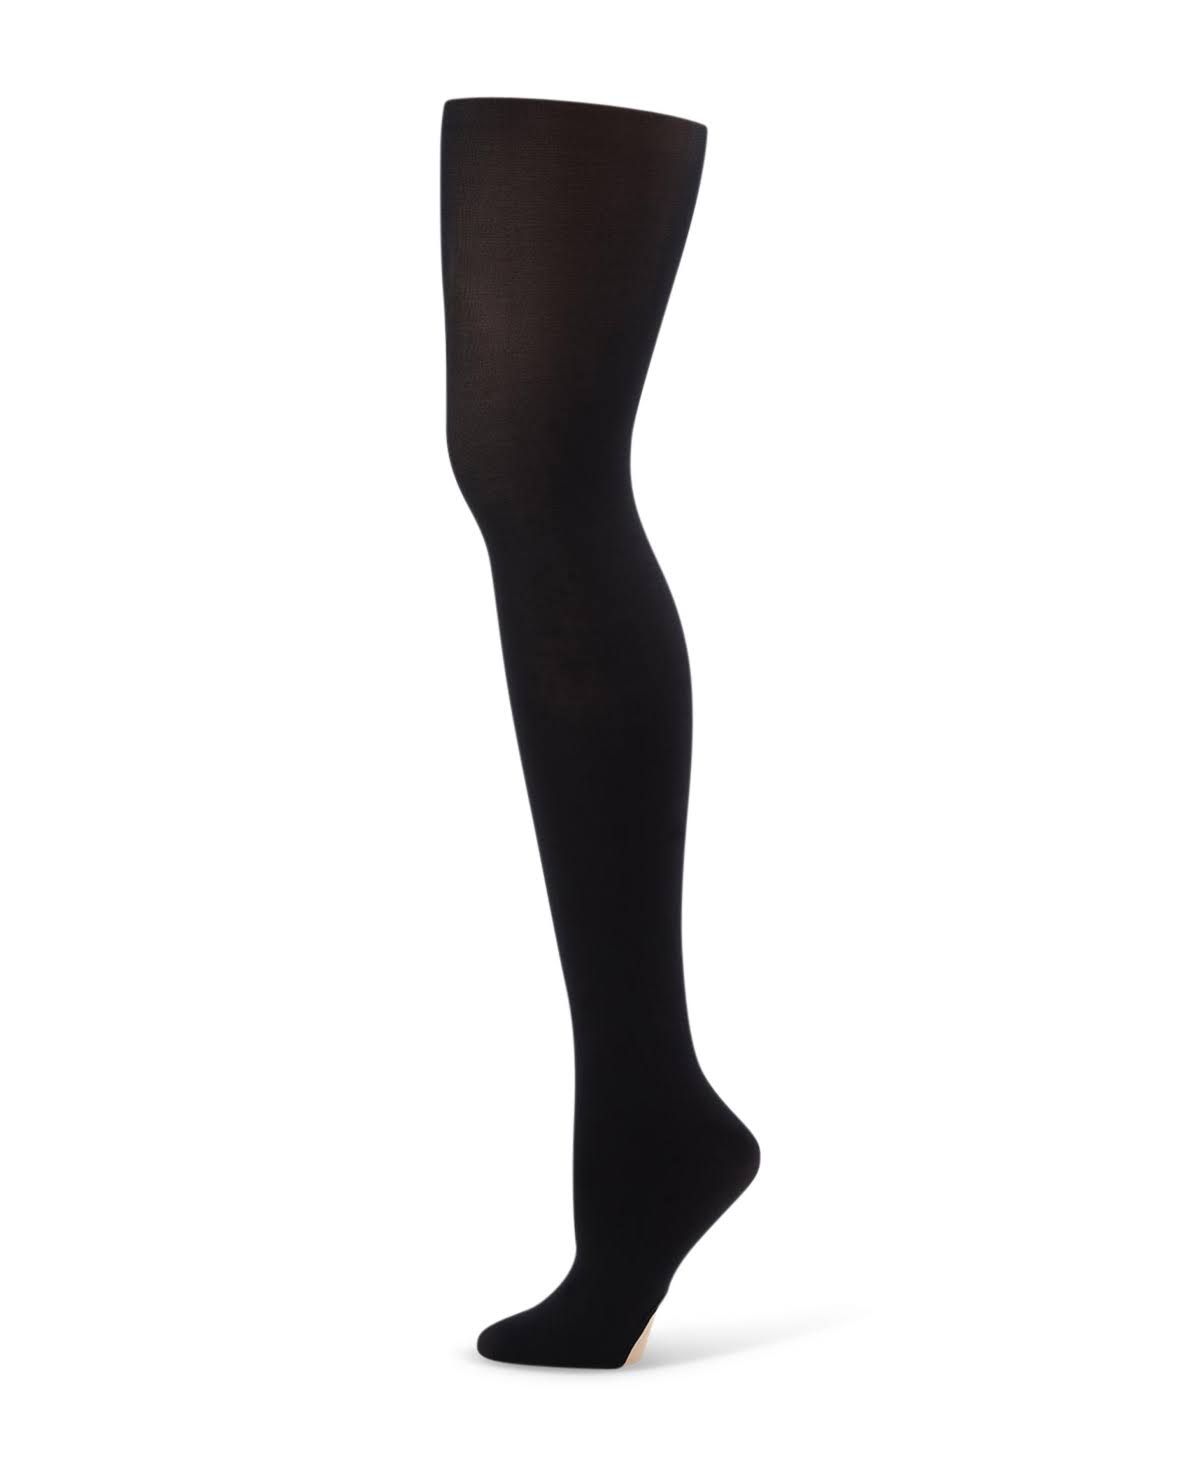 Capezio Women's Ultra Soft Transition Tights Black S/M, Size: S/M (130)